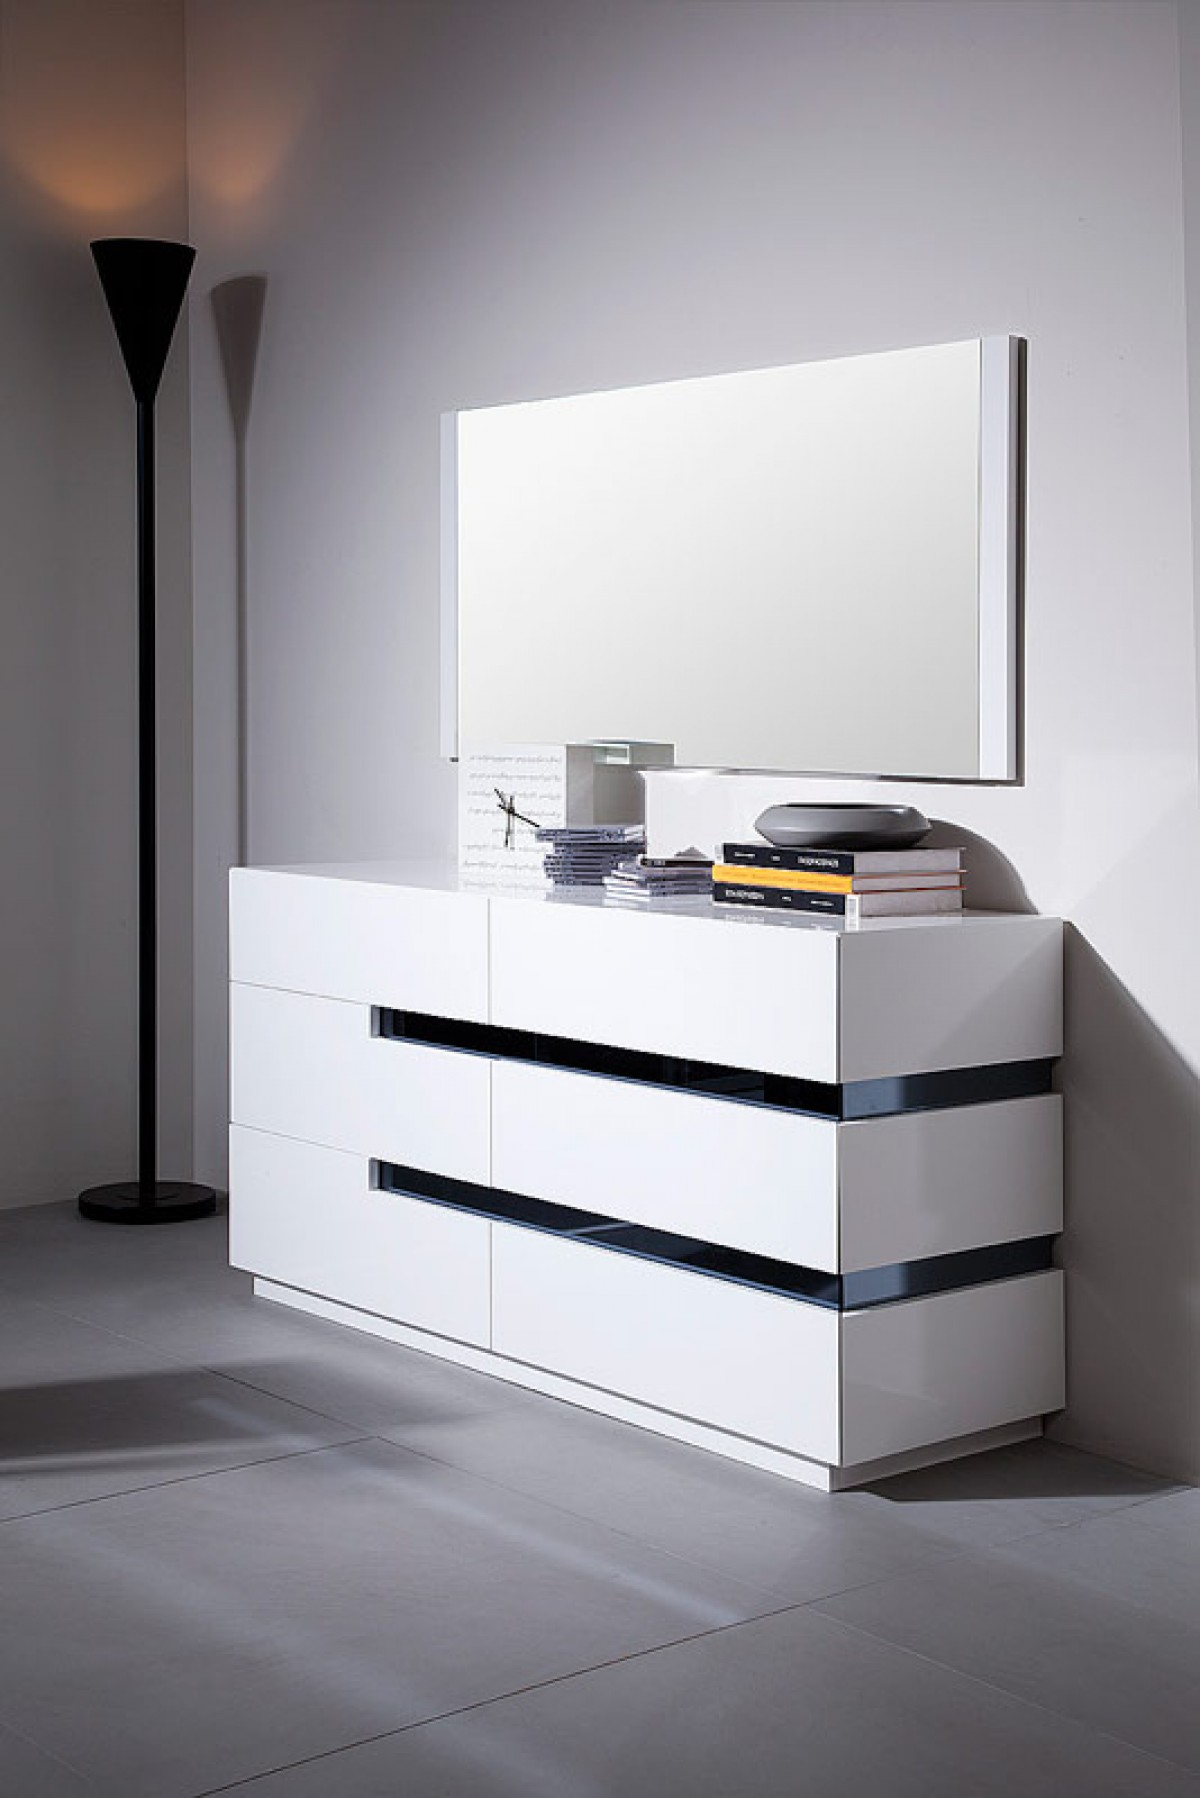 There are many ways to decorate. Modrest Polar - Contemporary White Gloss Dresser